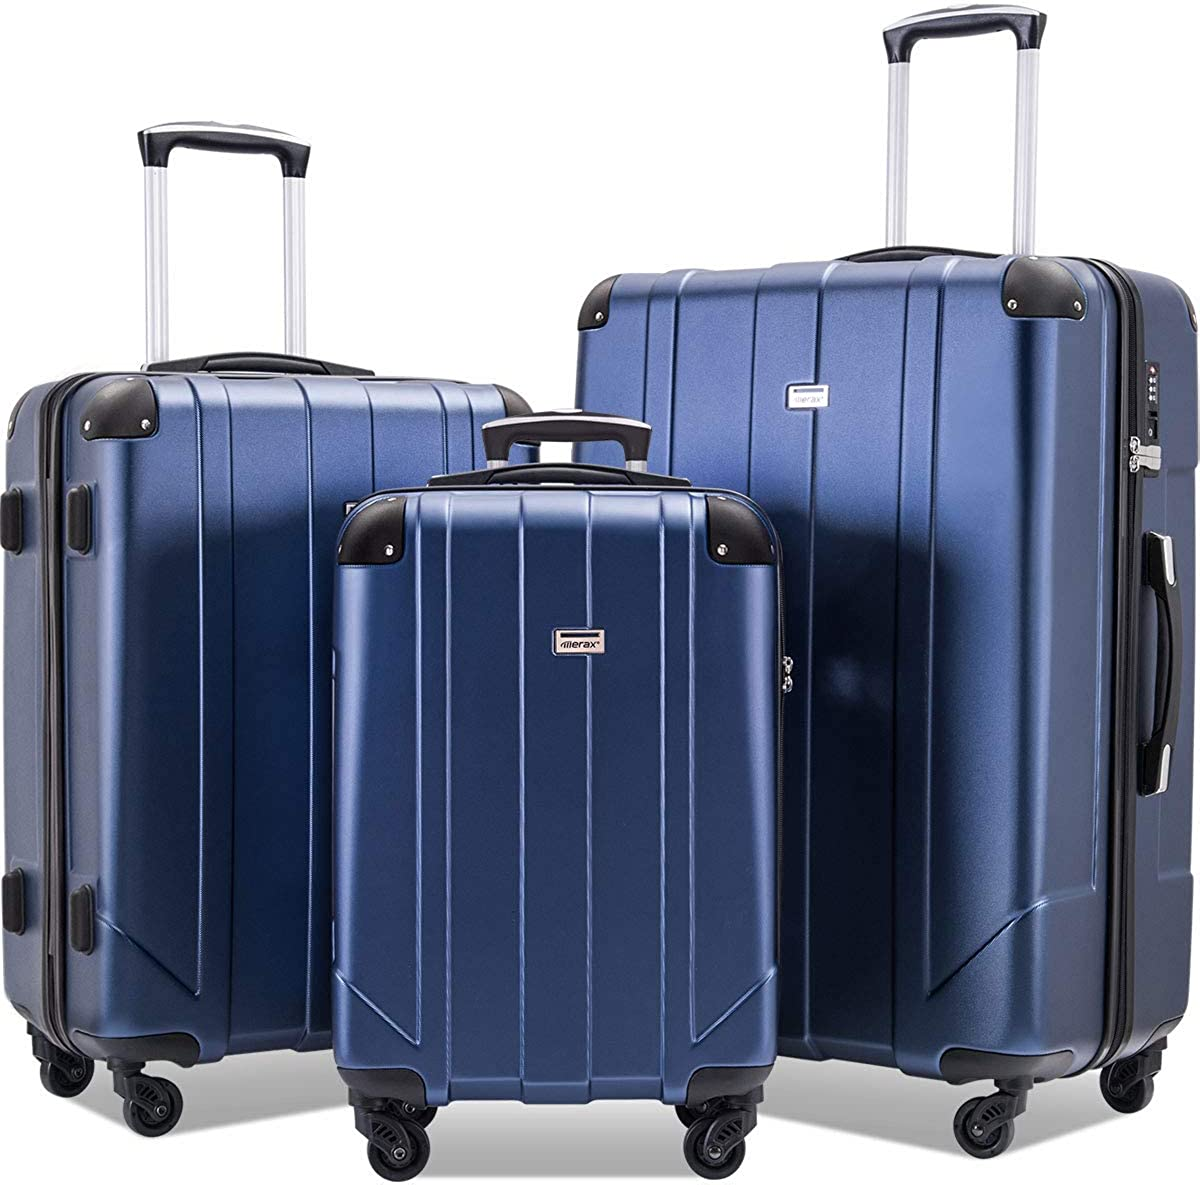 3 Piece Lightweight P.E.T Luggage 20inch 24inch 28inch Merax Luggage Sets with TSA Locks